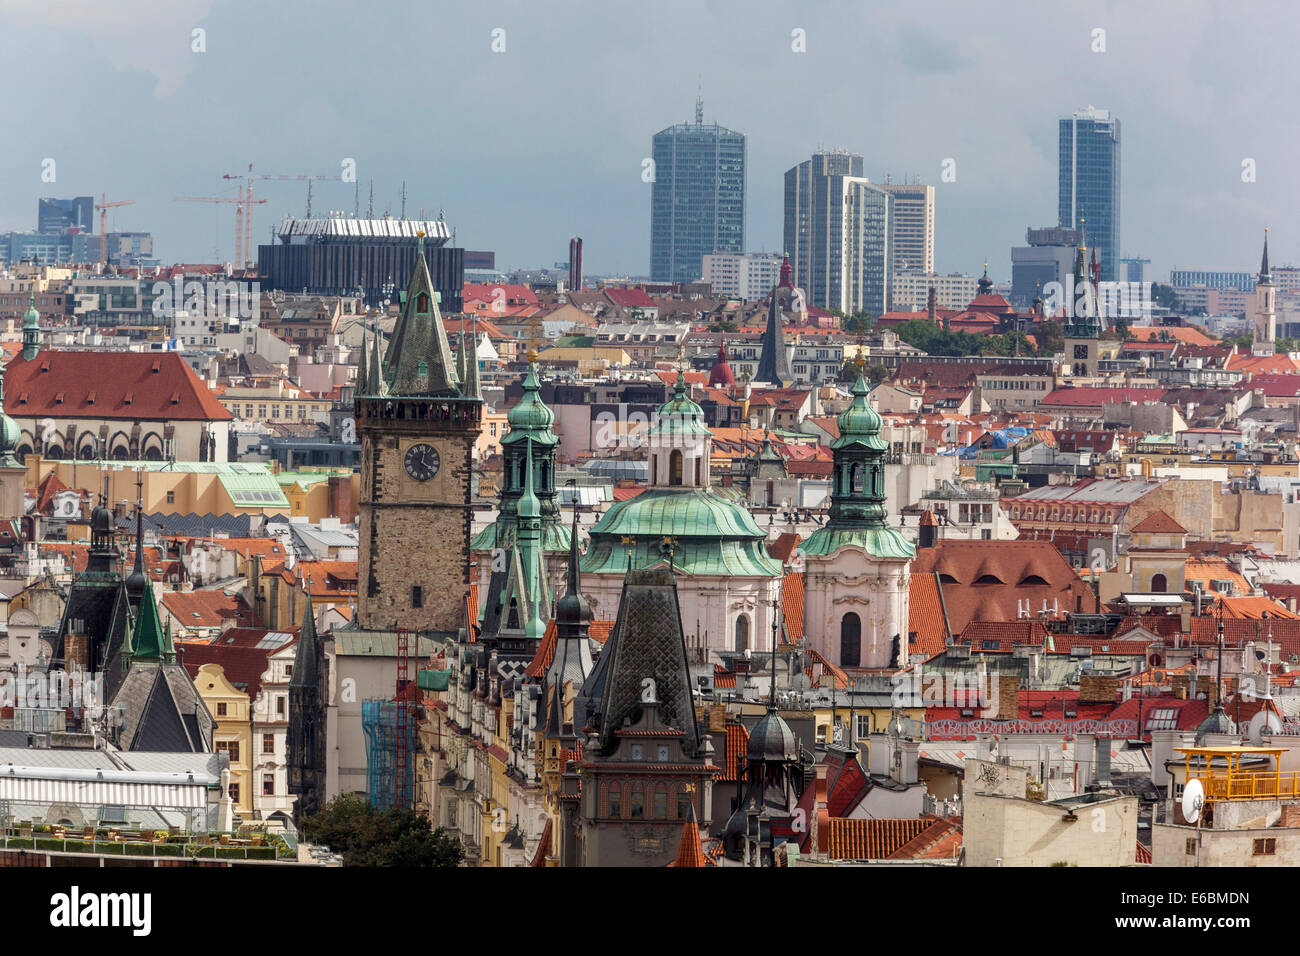 Background image mdn - Old Town And Skyscrapers In The Background On Pankrac Discrict Prague Czech Republic